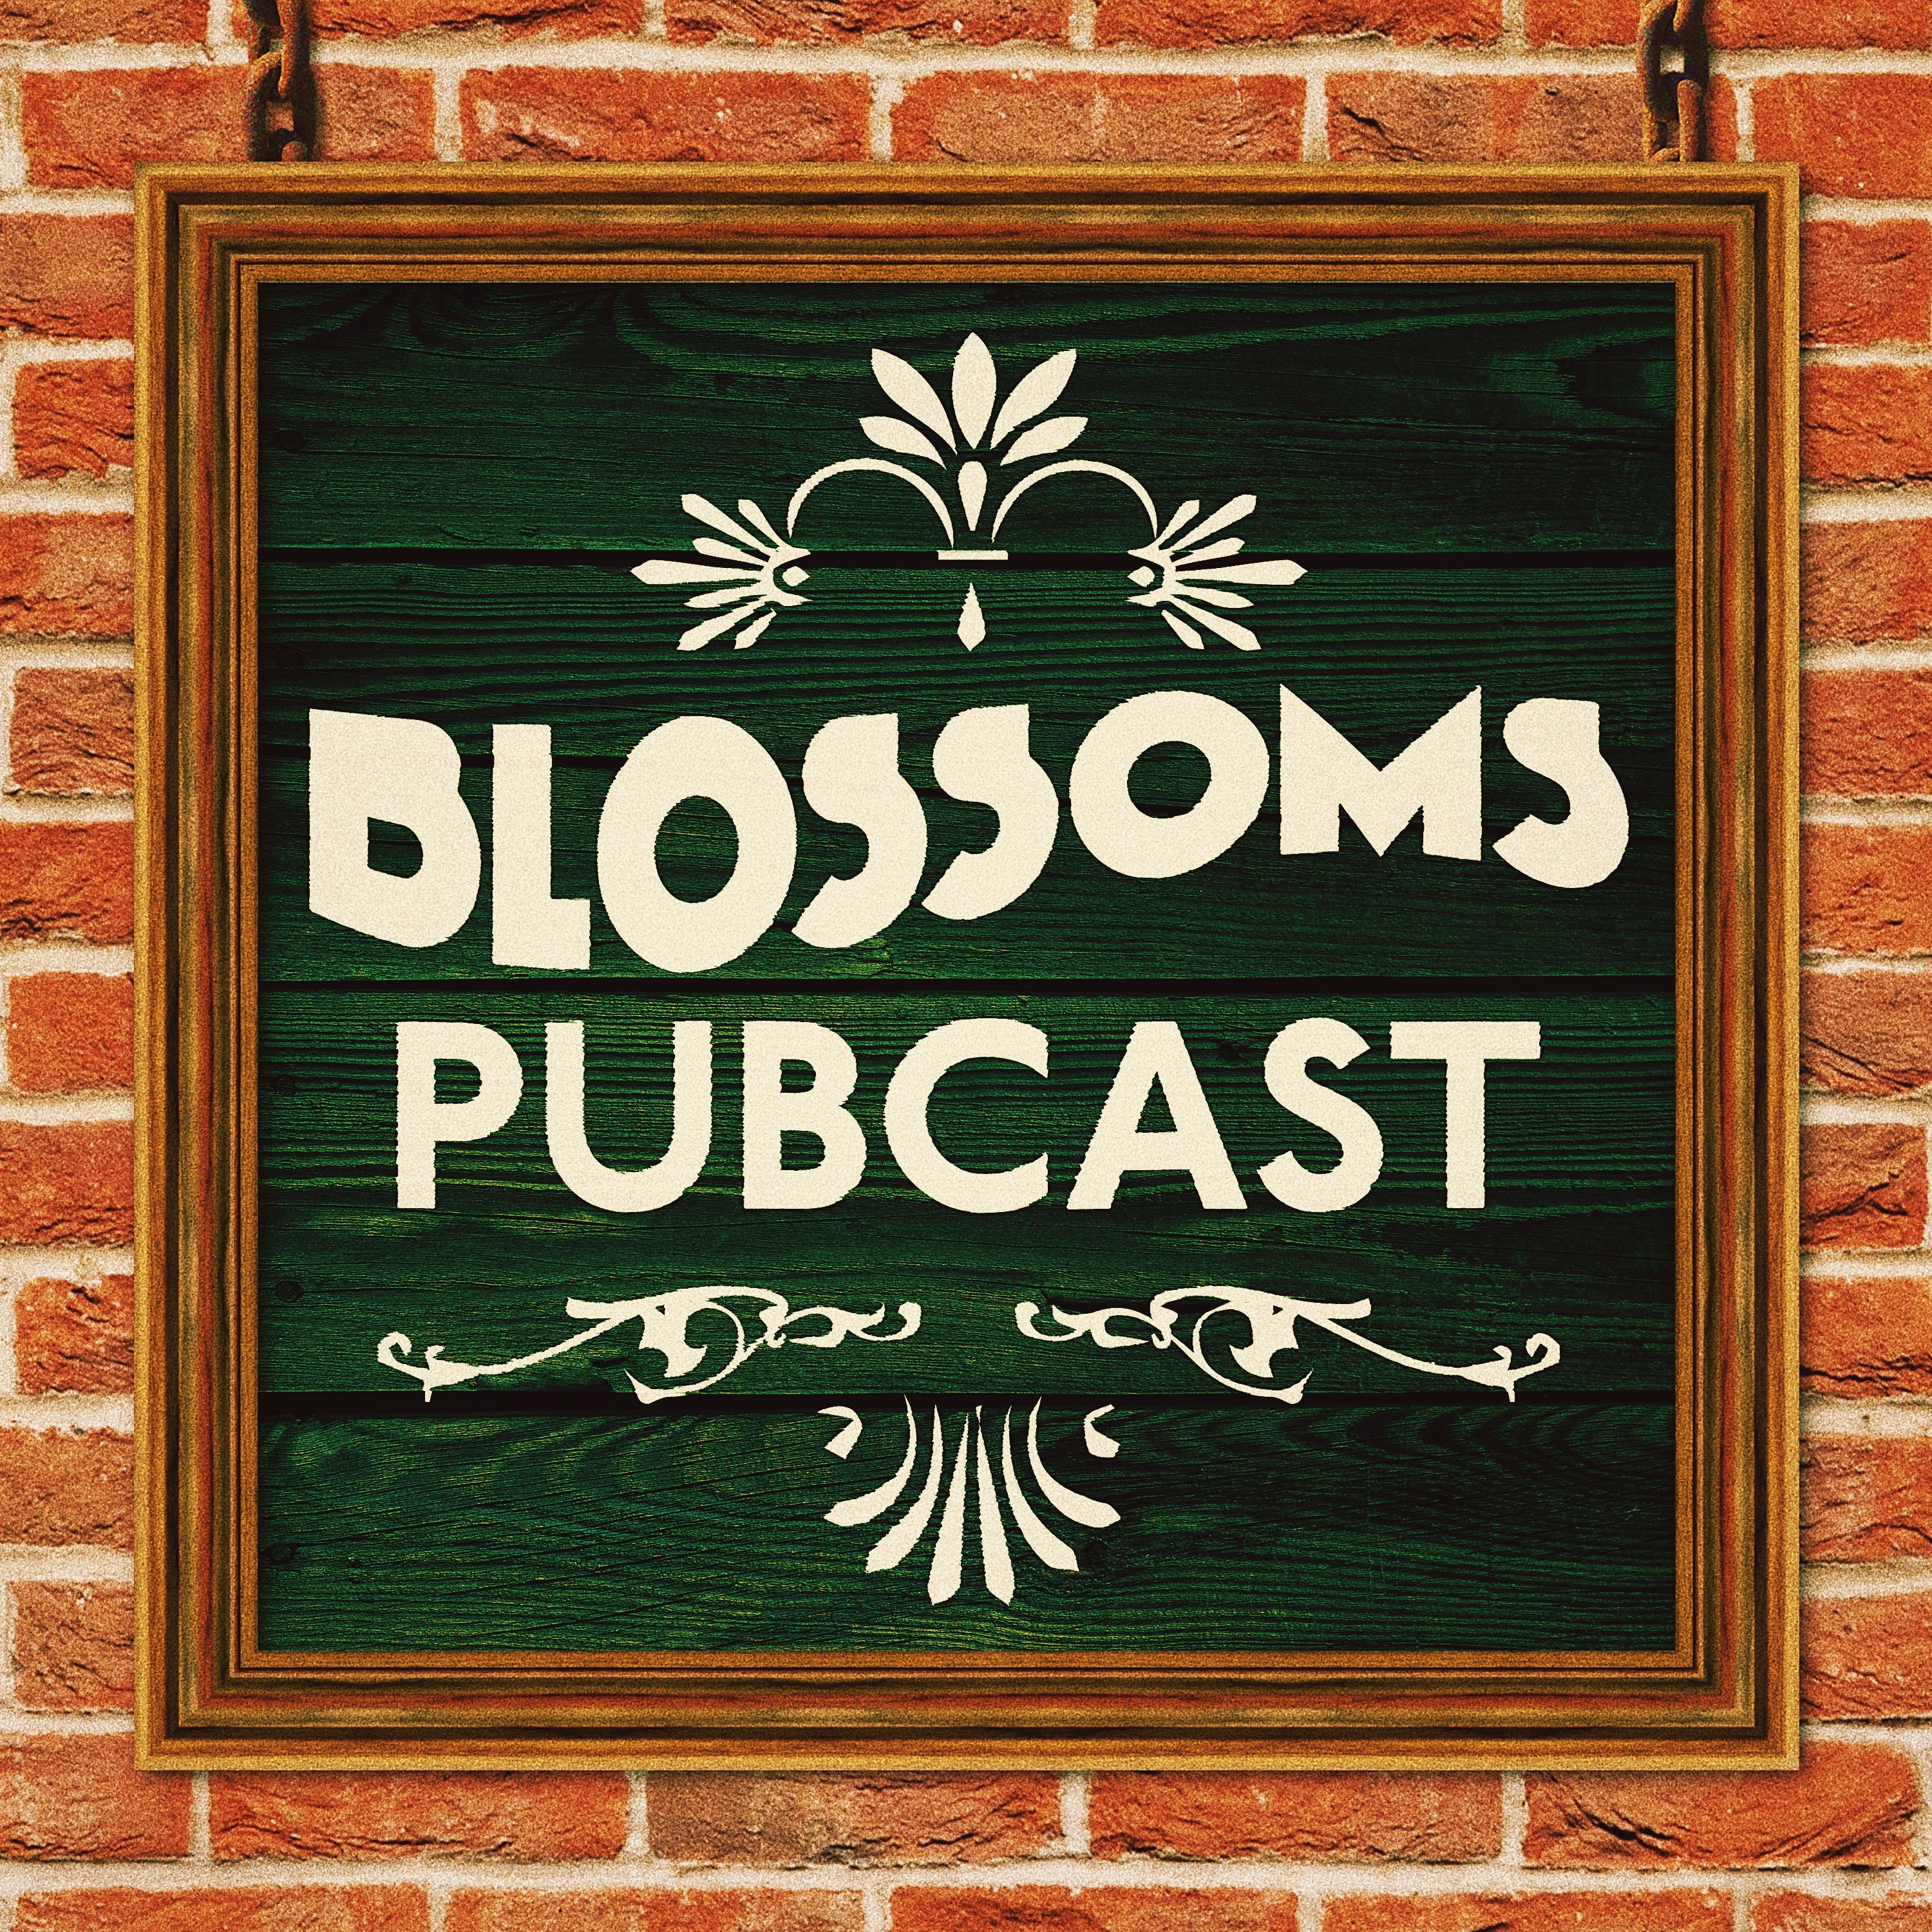 Blossoms Pubcast - Christmas Special